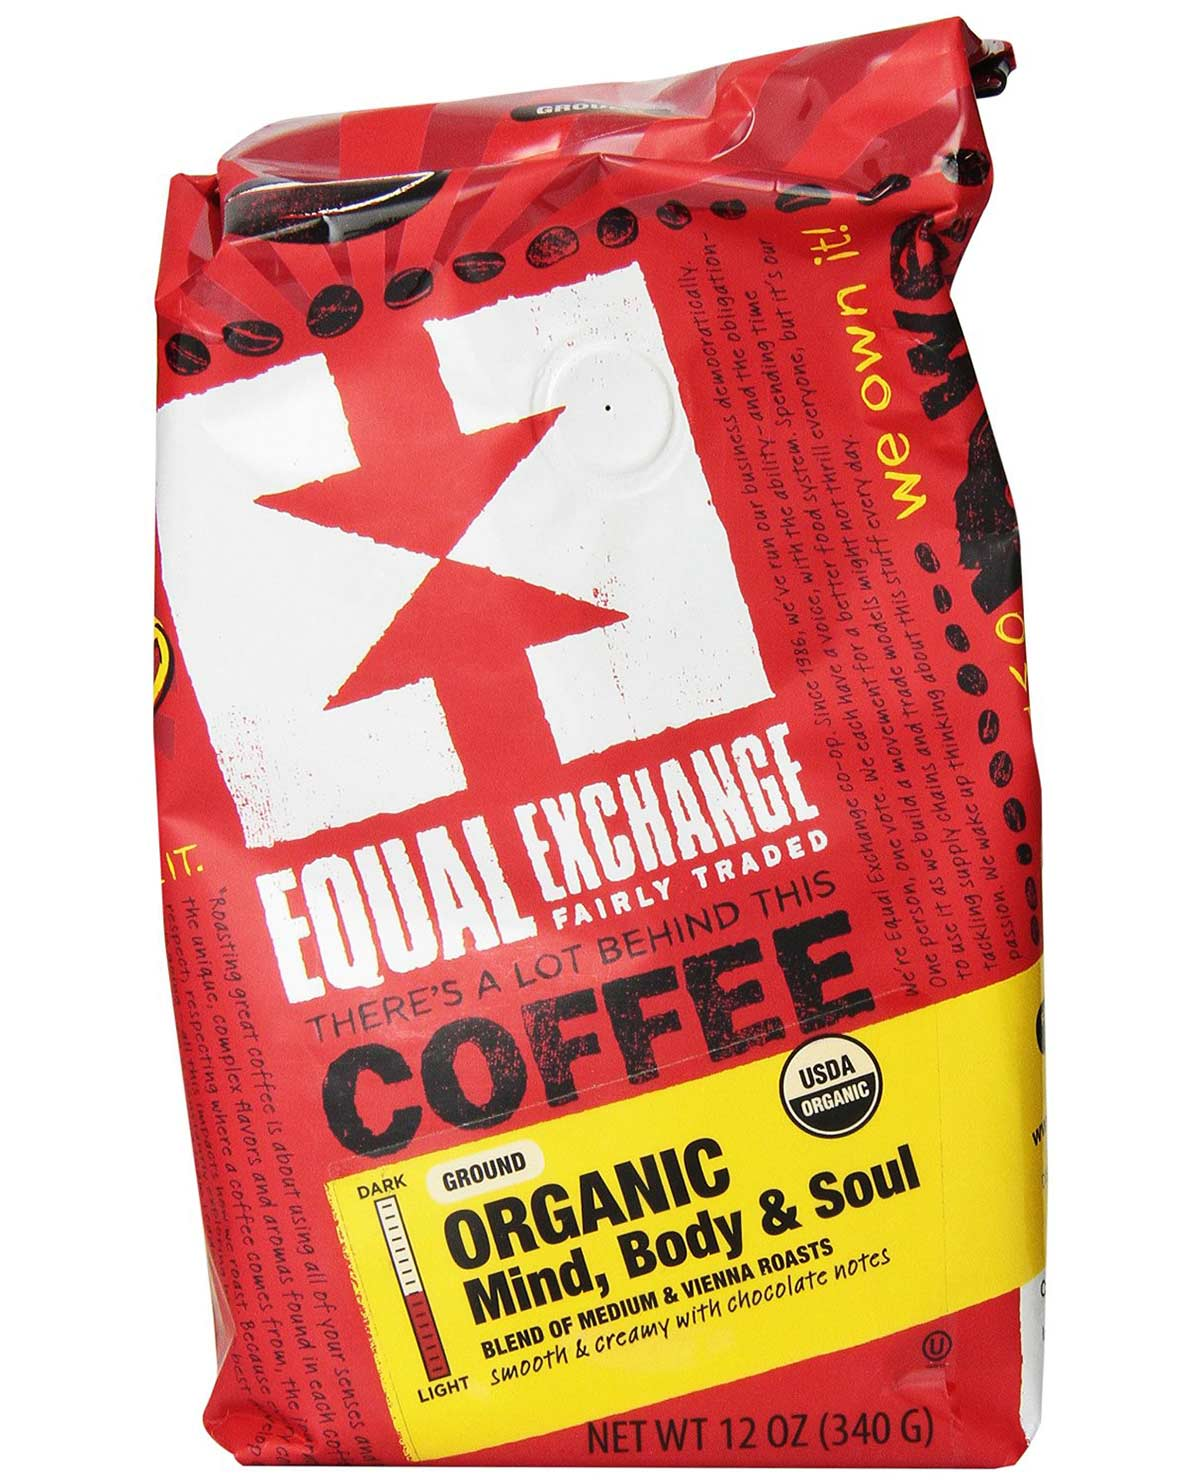 Mind Body and Soul Organic Coffee by Equal Exchange